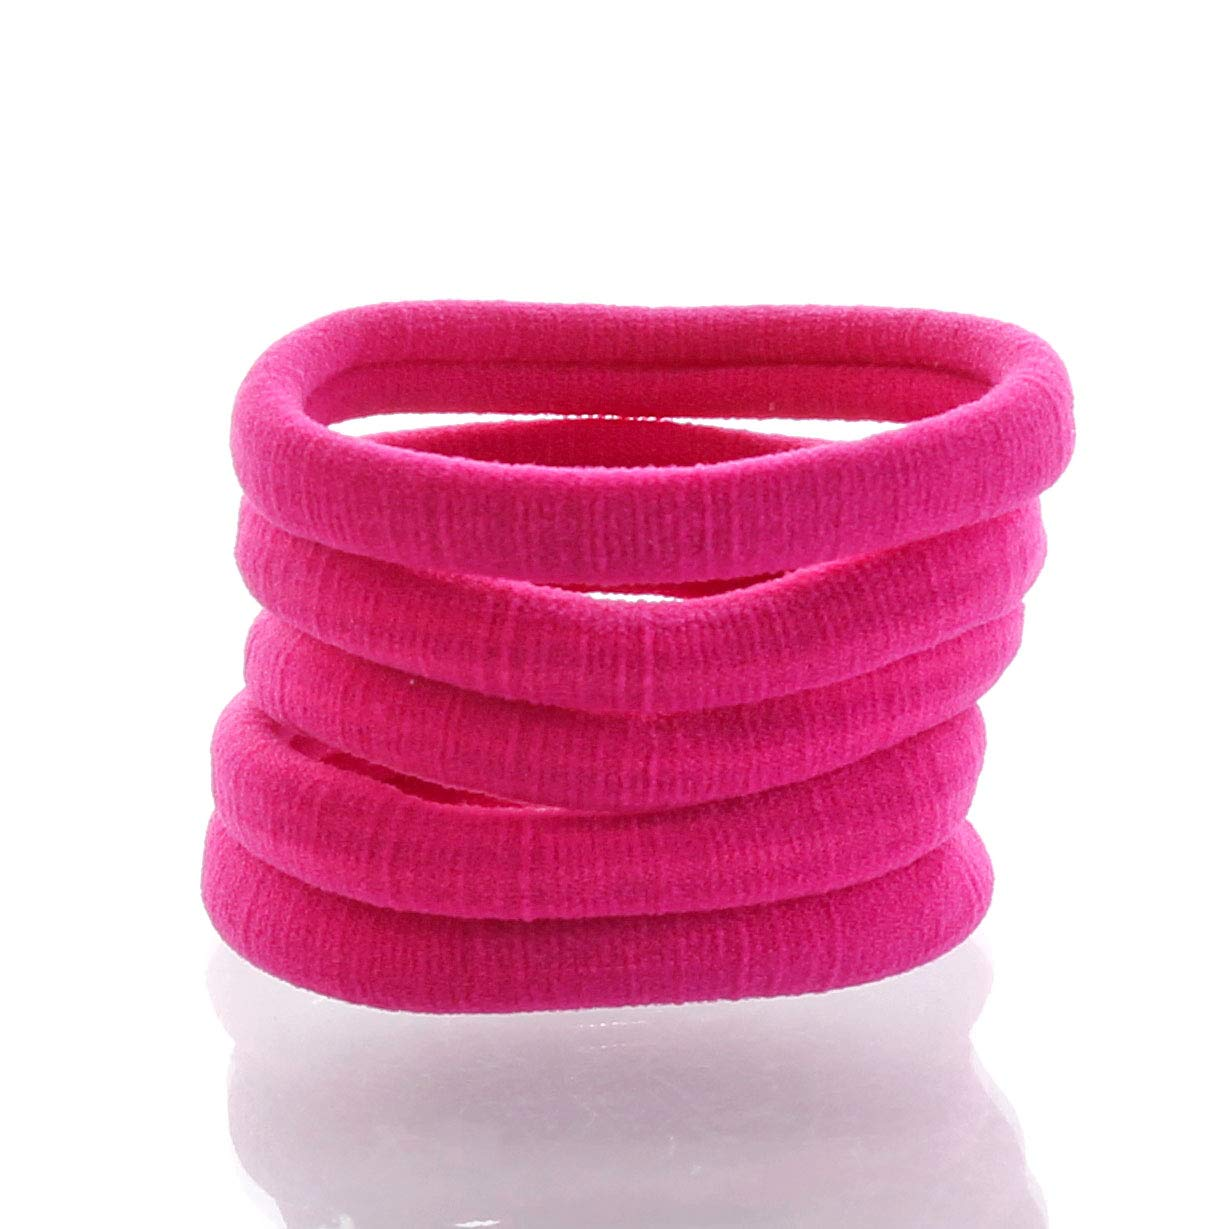 My Lello Large Thick Premium Elastic Ponytail Hair Bands - Seamless- Fuchsia 1000pcs by My Lello